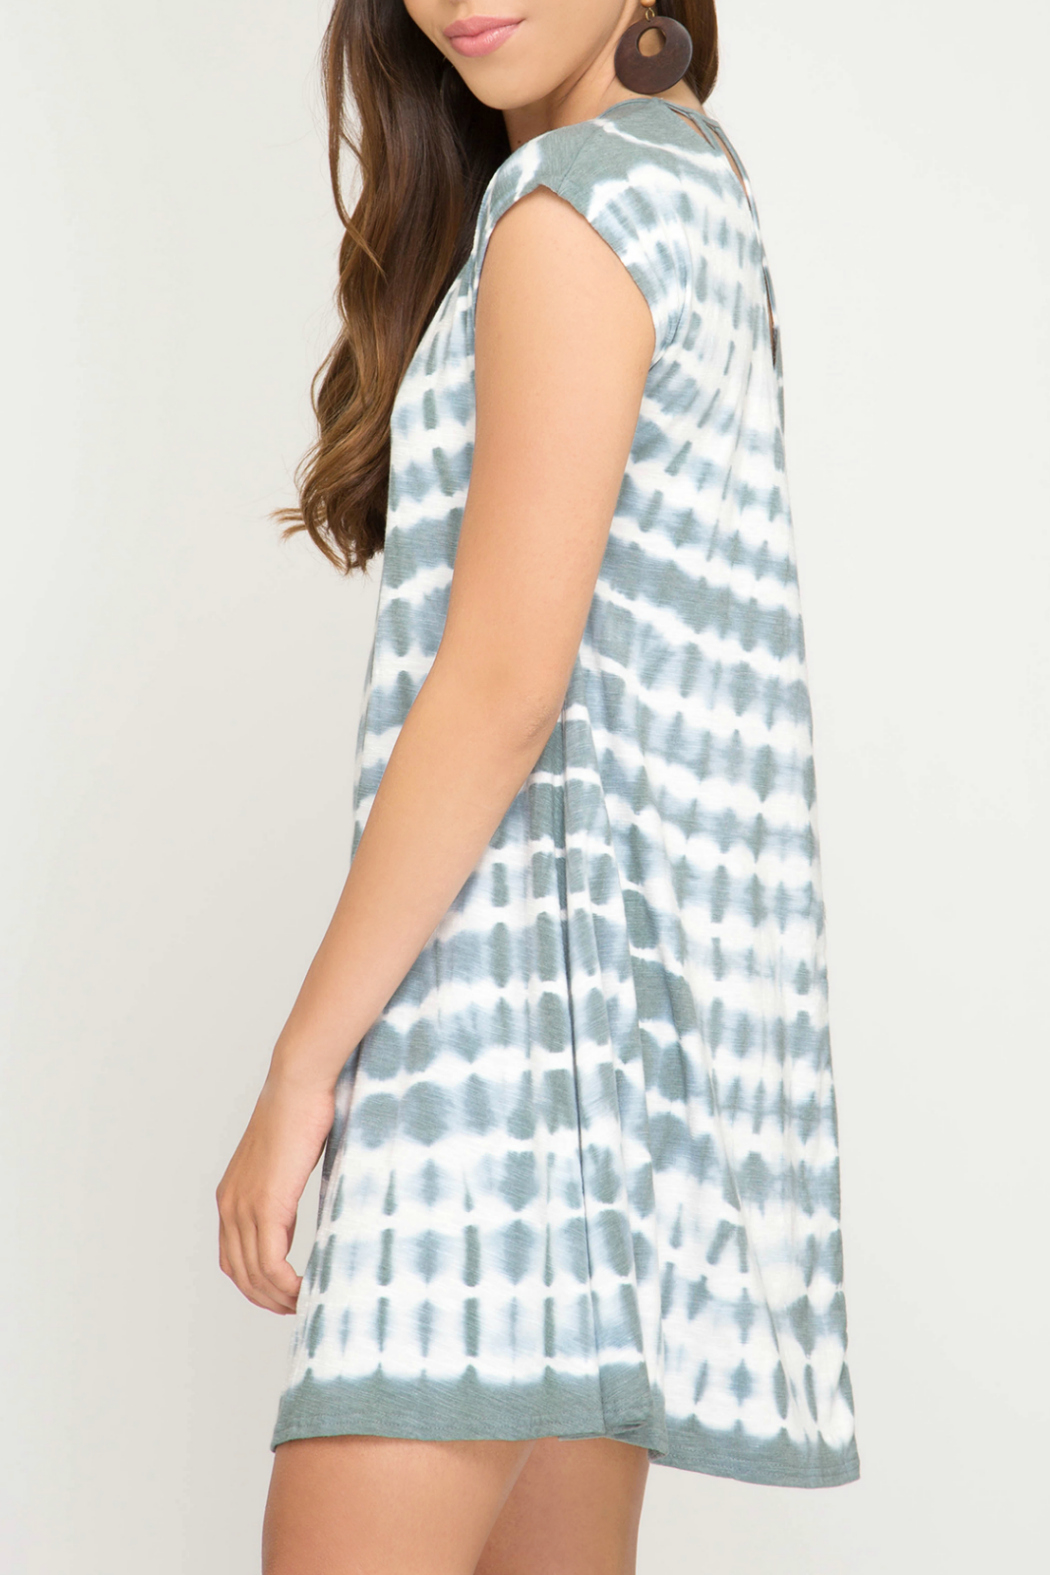 She + Sky Tie Dye Dress w Back Strap Detail - Side Cropped Image